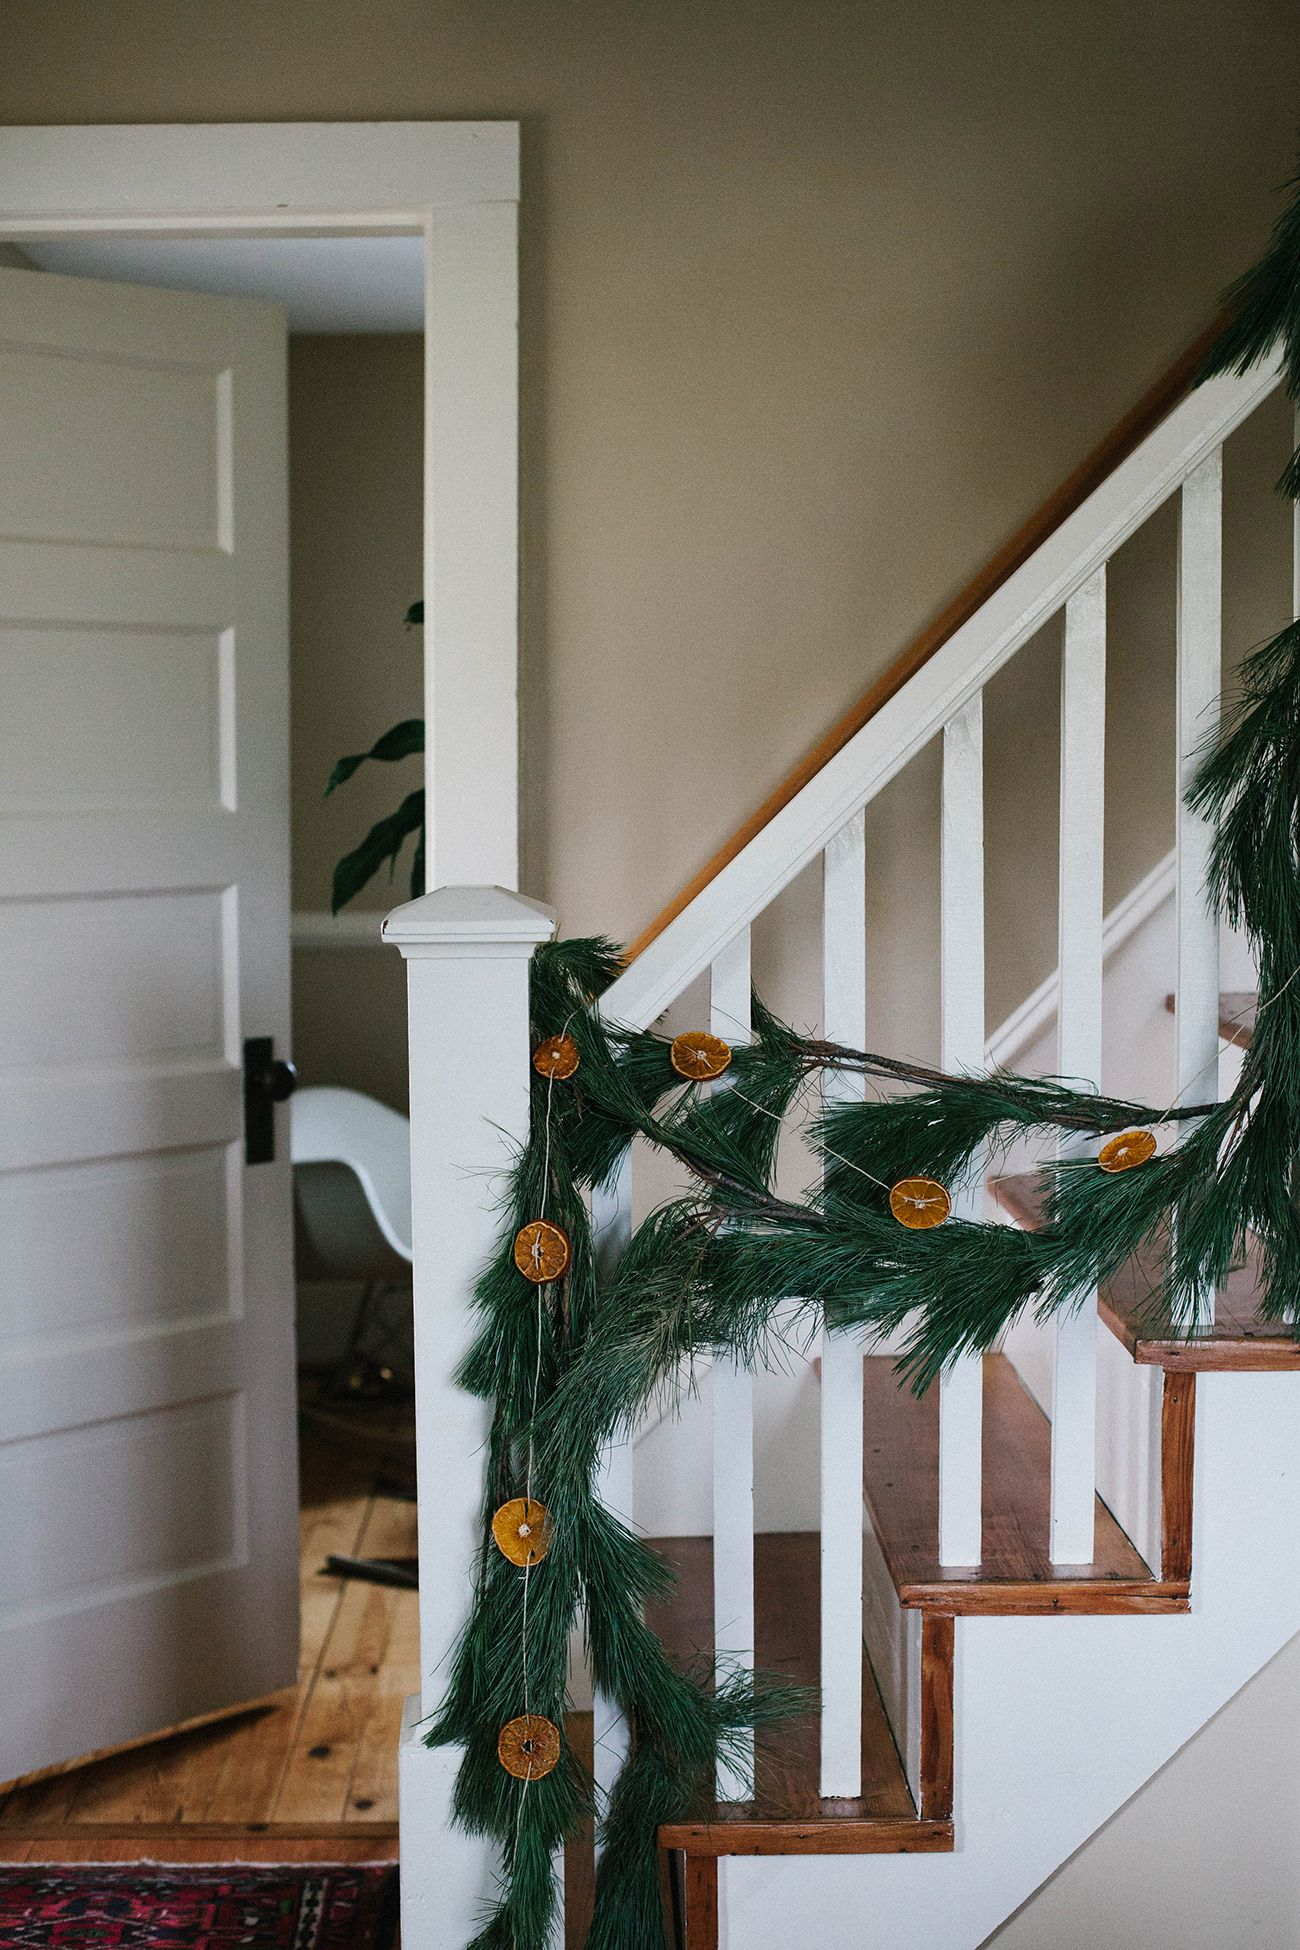 25 Winter Decorating Ideas   How to Decorate Your Home for Winter evergreen garland  dried orange slice garland  winter decorations